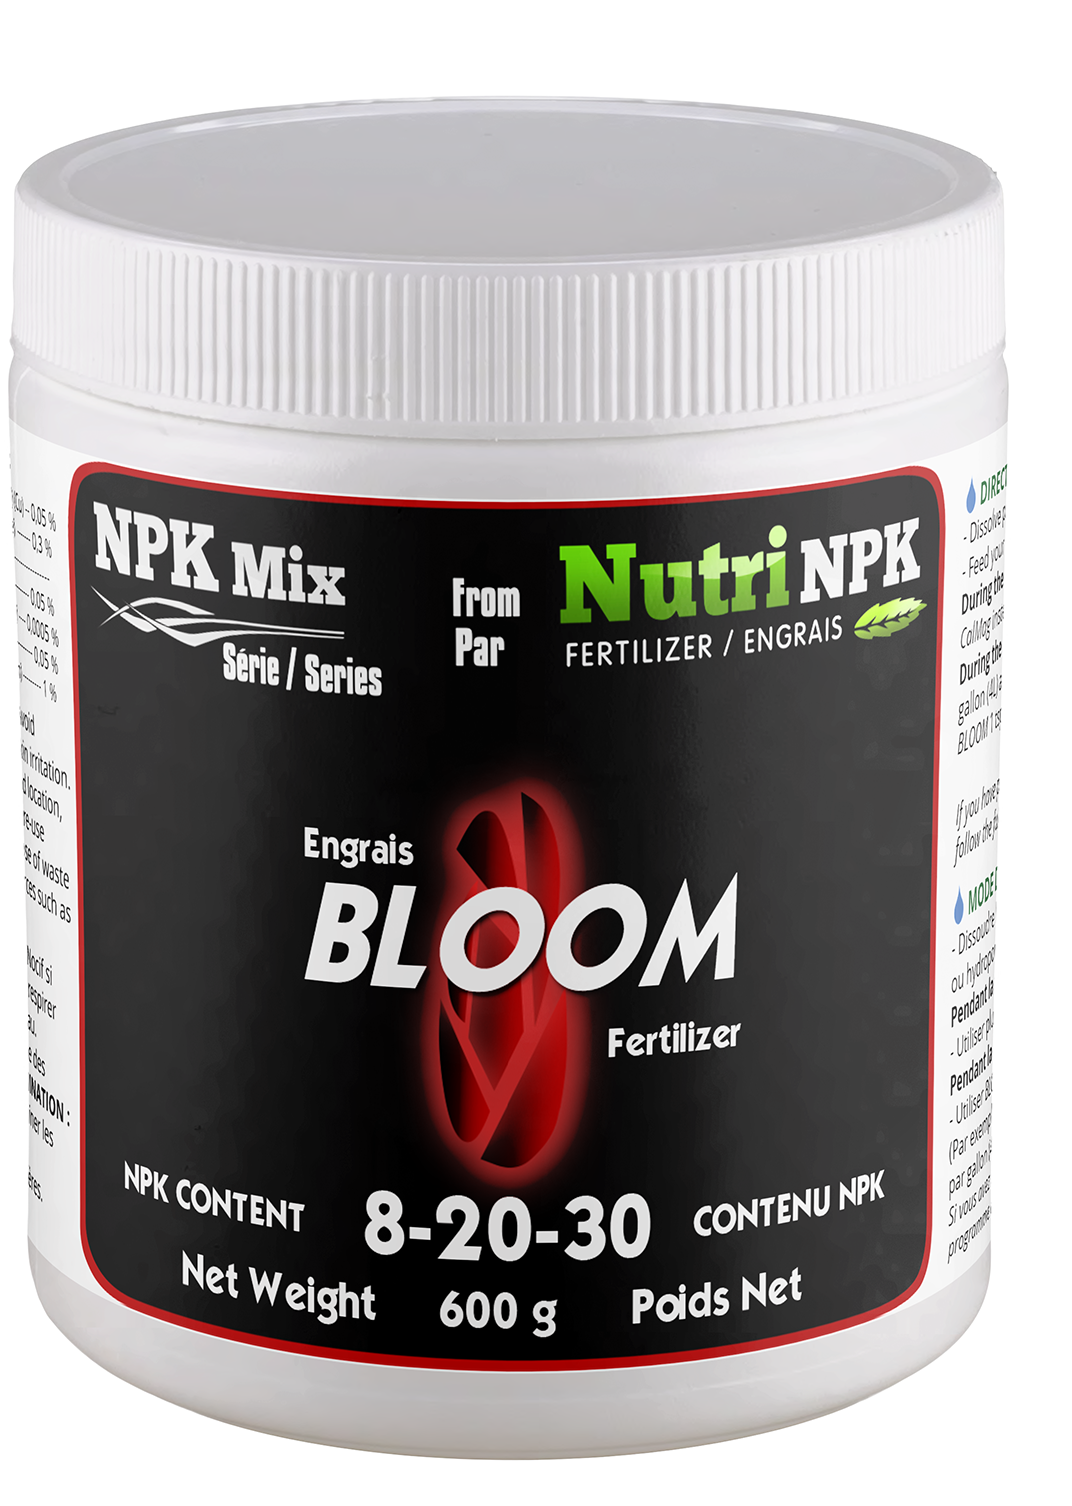 BLOOM Cannabis Fertilizer - NPK Mix by NutriNPK